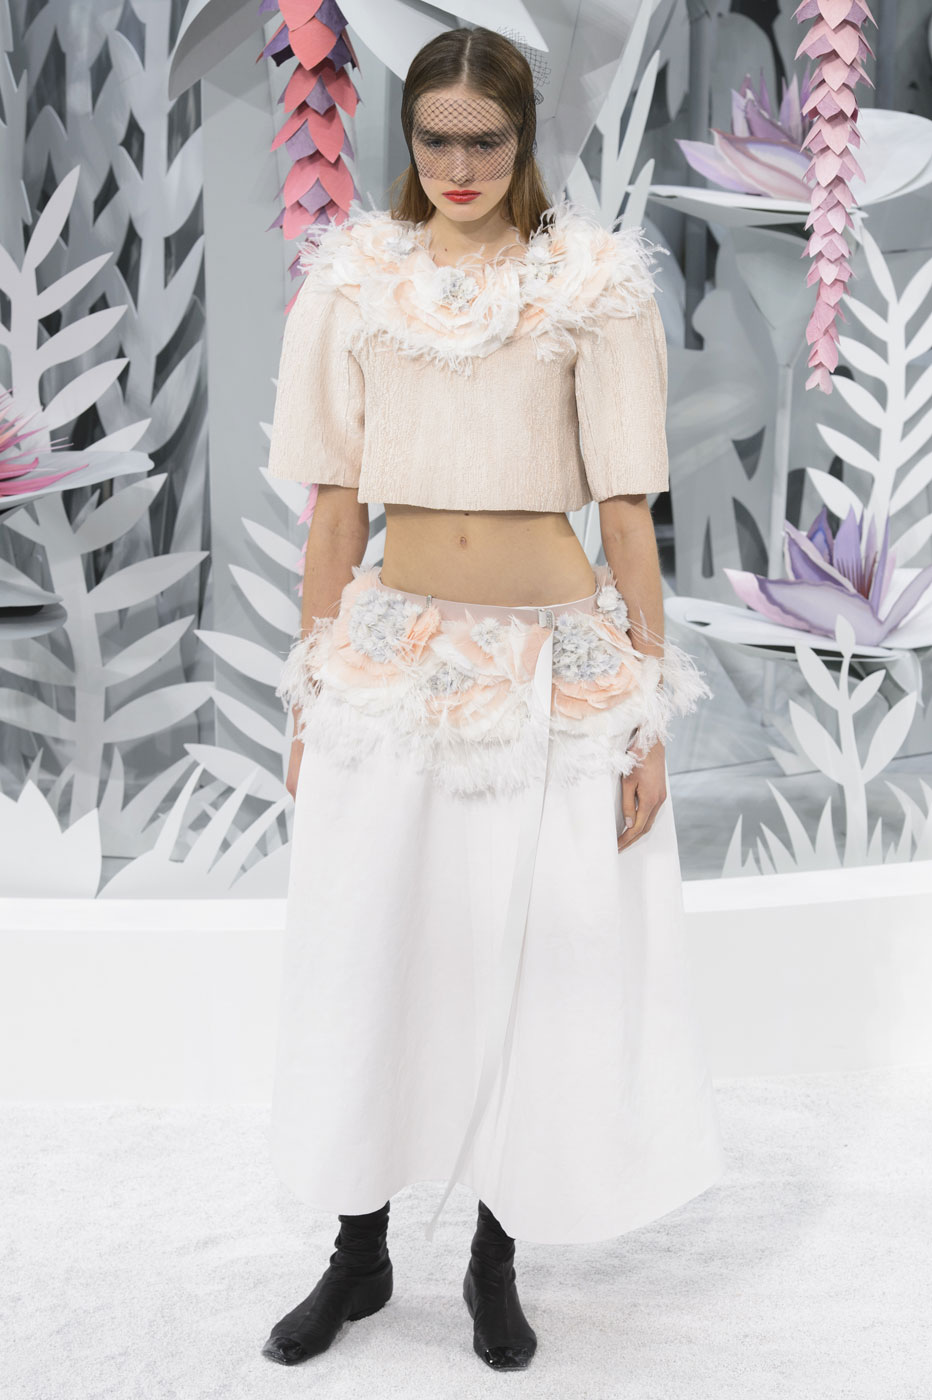 Chanel-fashion-runway-show-haute-couture-paris-spring-summer-2015-the-impression-141